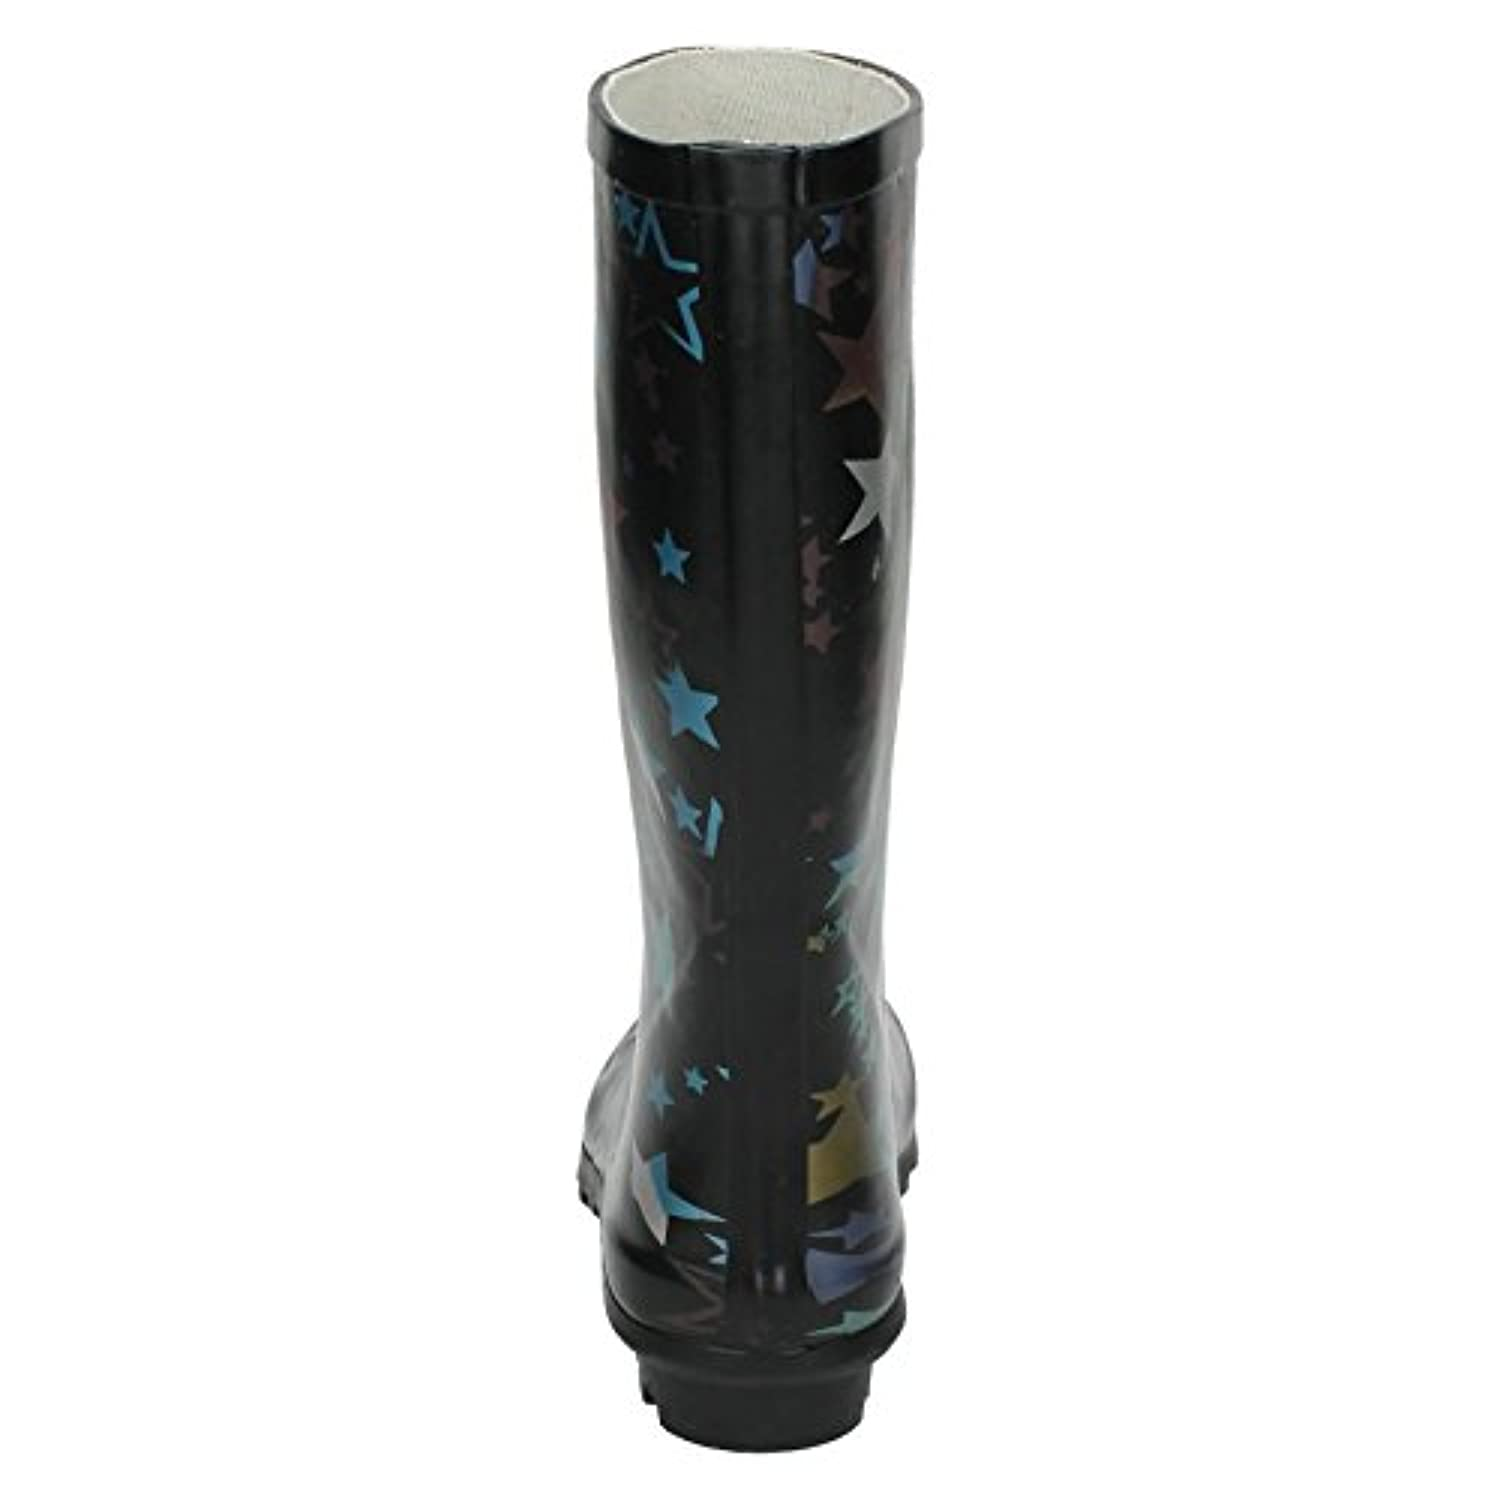 Girls Spot On Star Print Wellington Boot - Black Rubber - UK Size 3 Child - EU Size 36 - US Size 4